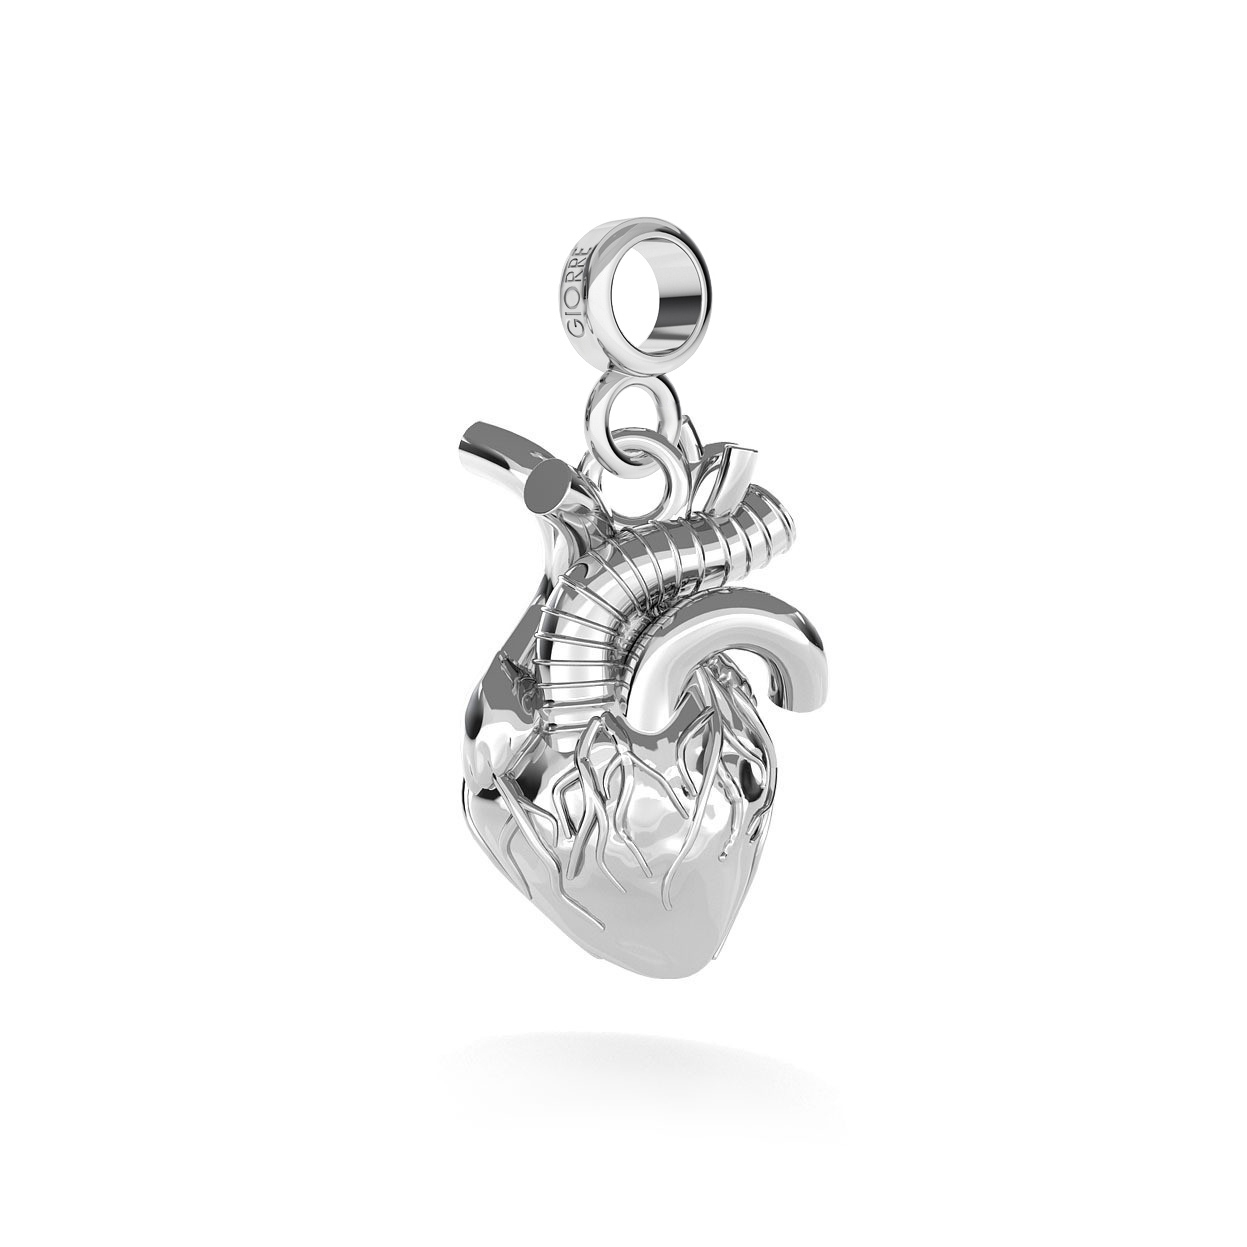 CHARM 139, HUMAN HEART, STERLING SILVER (925) RHODIUM OR GOLD PLATED